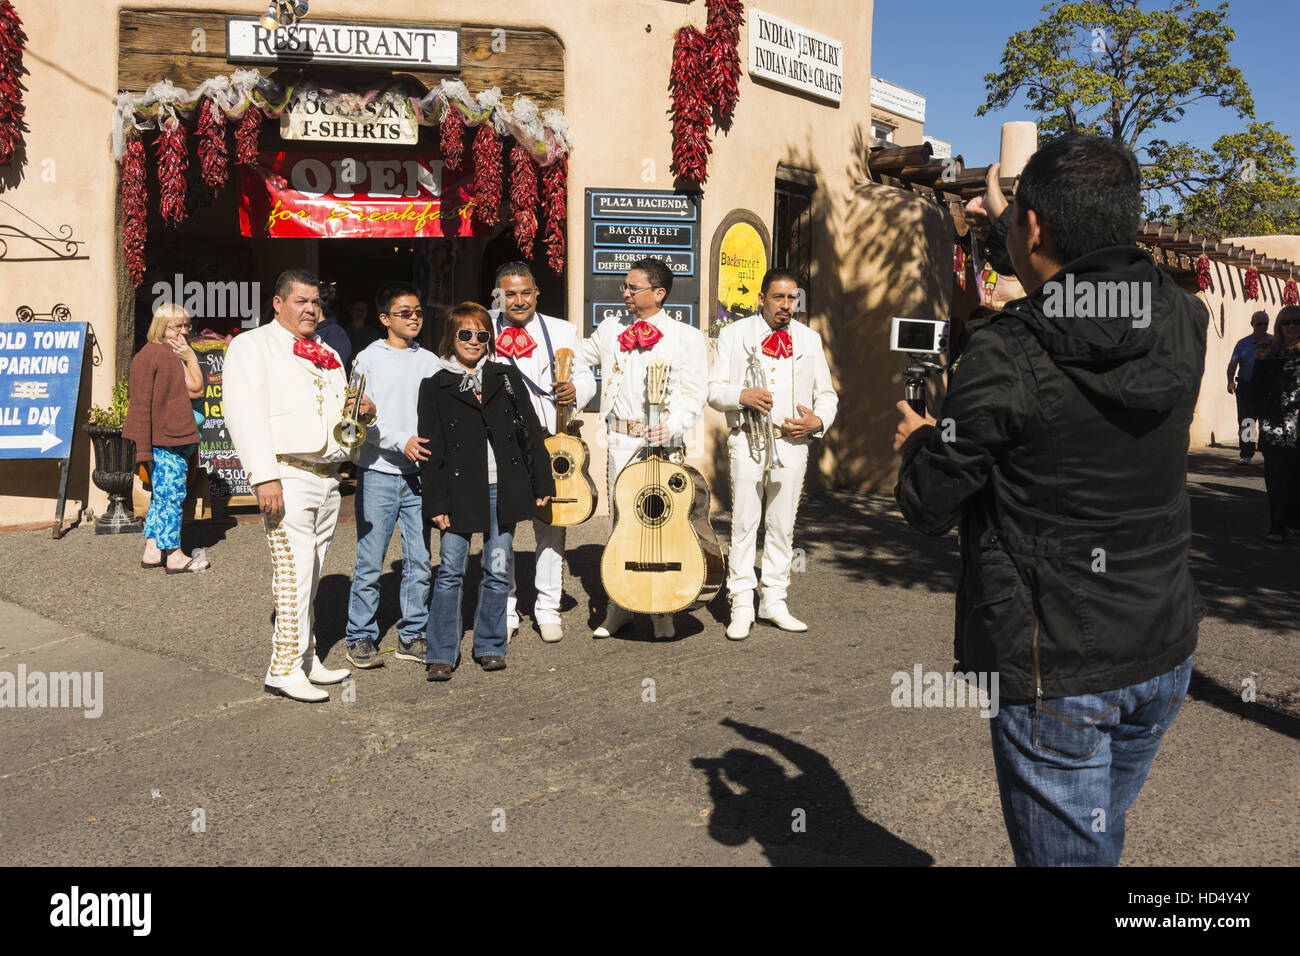 New Mexico, Albuquerque, Old Town, mariachi musicians with tourist - Stock Image